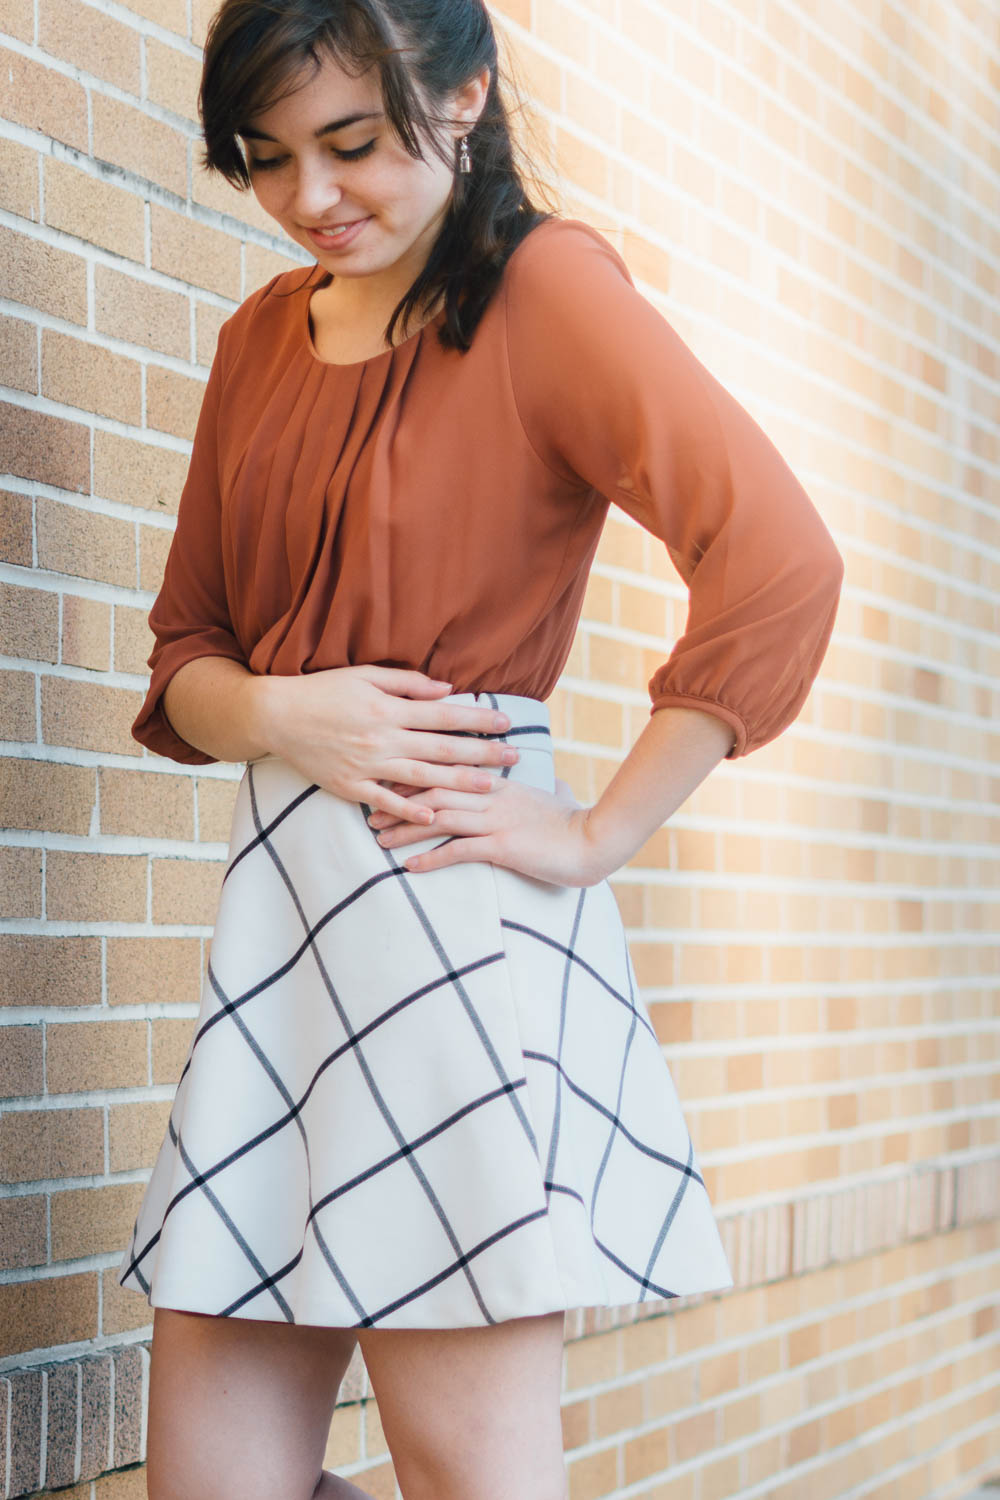 Kaity from Lovely Friend Blog: Burnt orange top + windowpane skirt